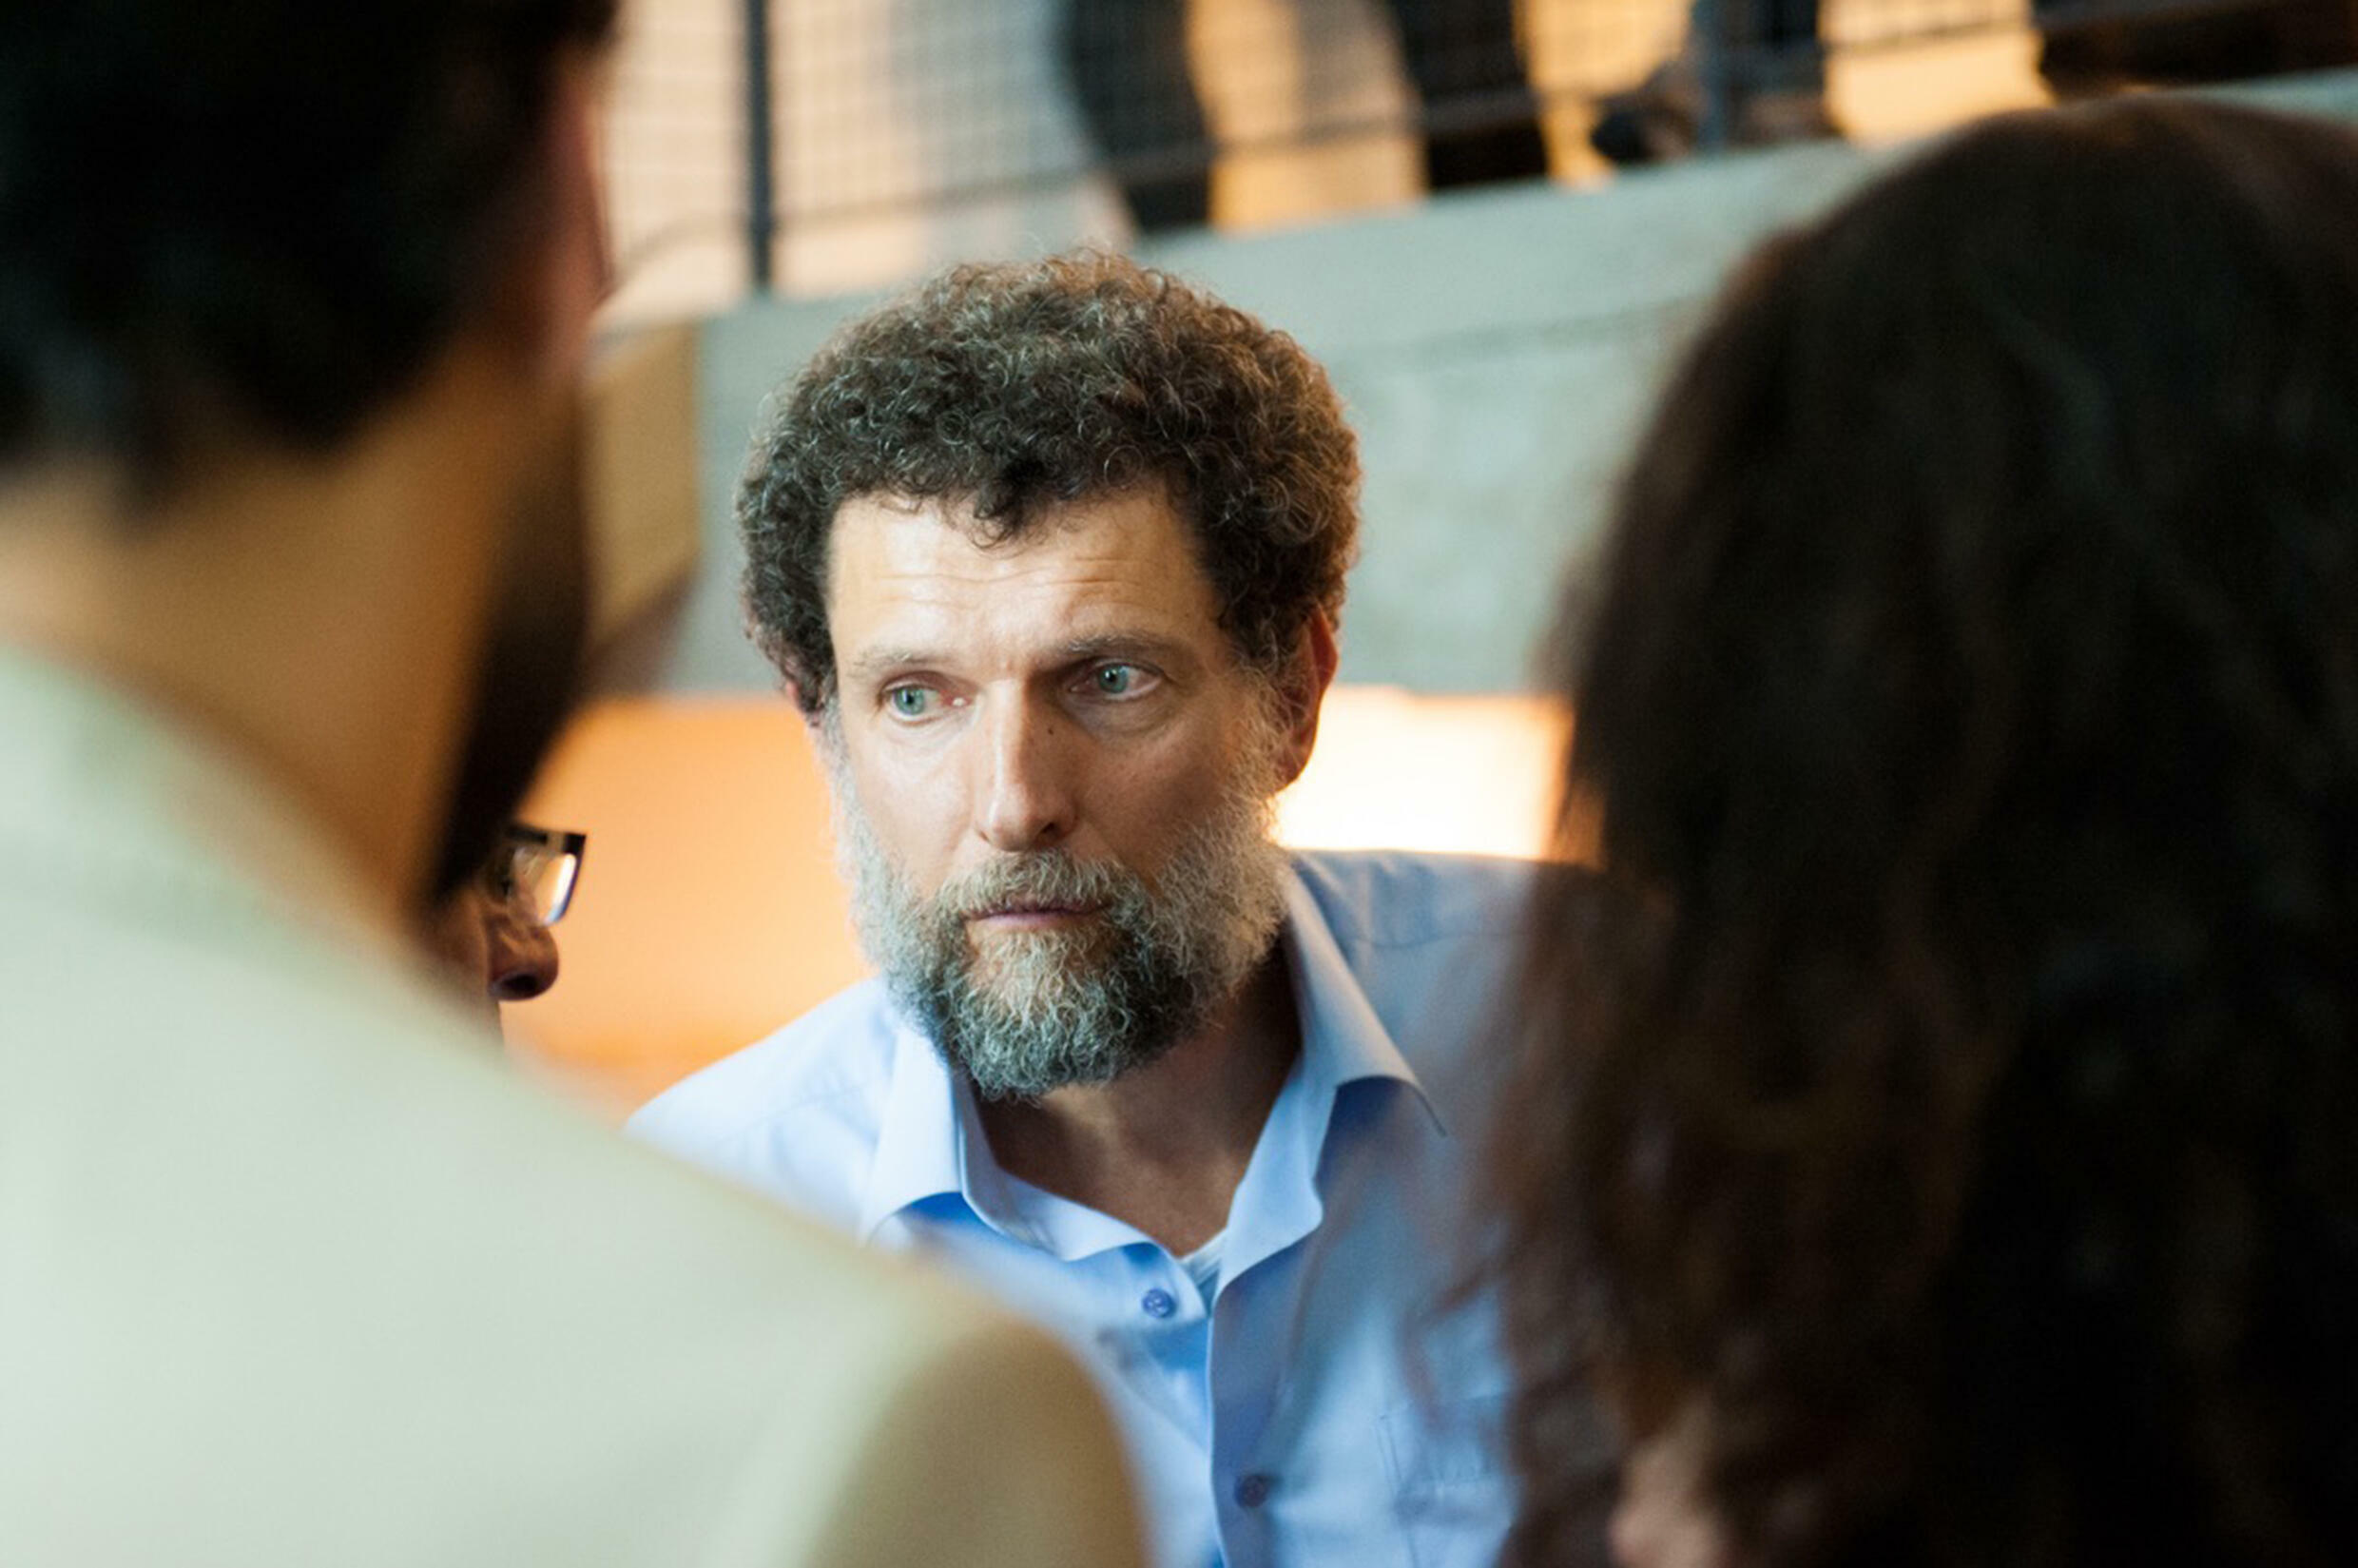 Turkish philanthropist Osman Kavala says he believes his best hope for release is through the Council of Europe